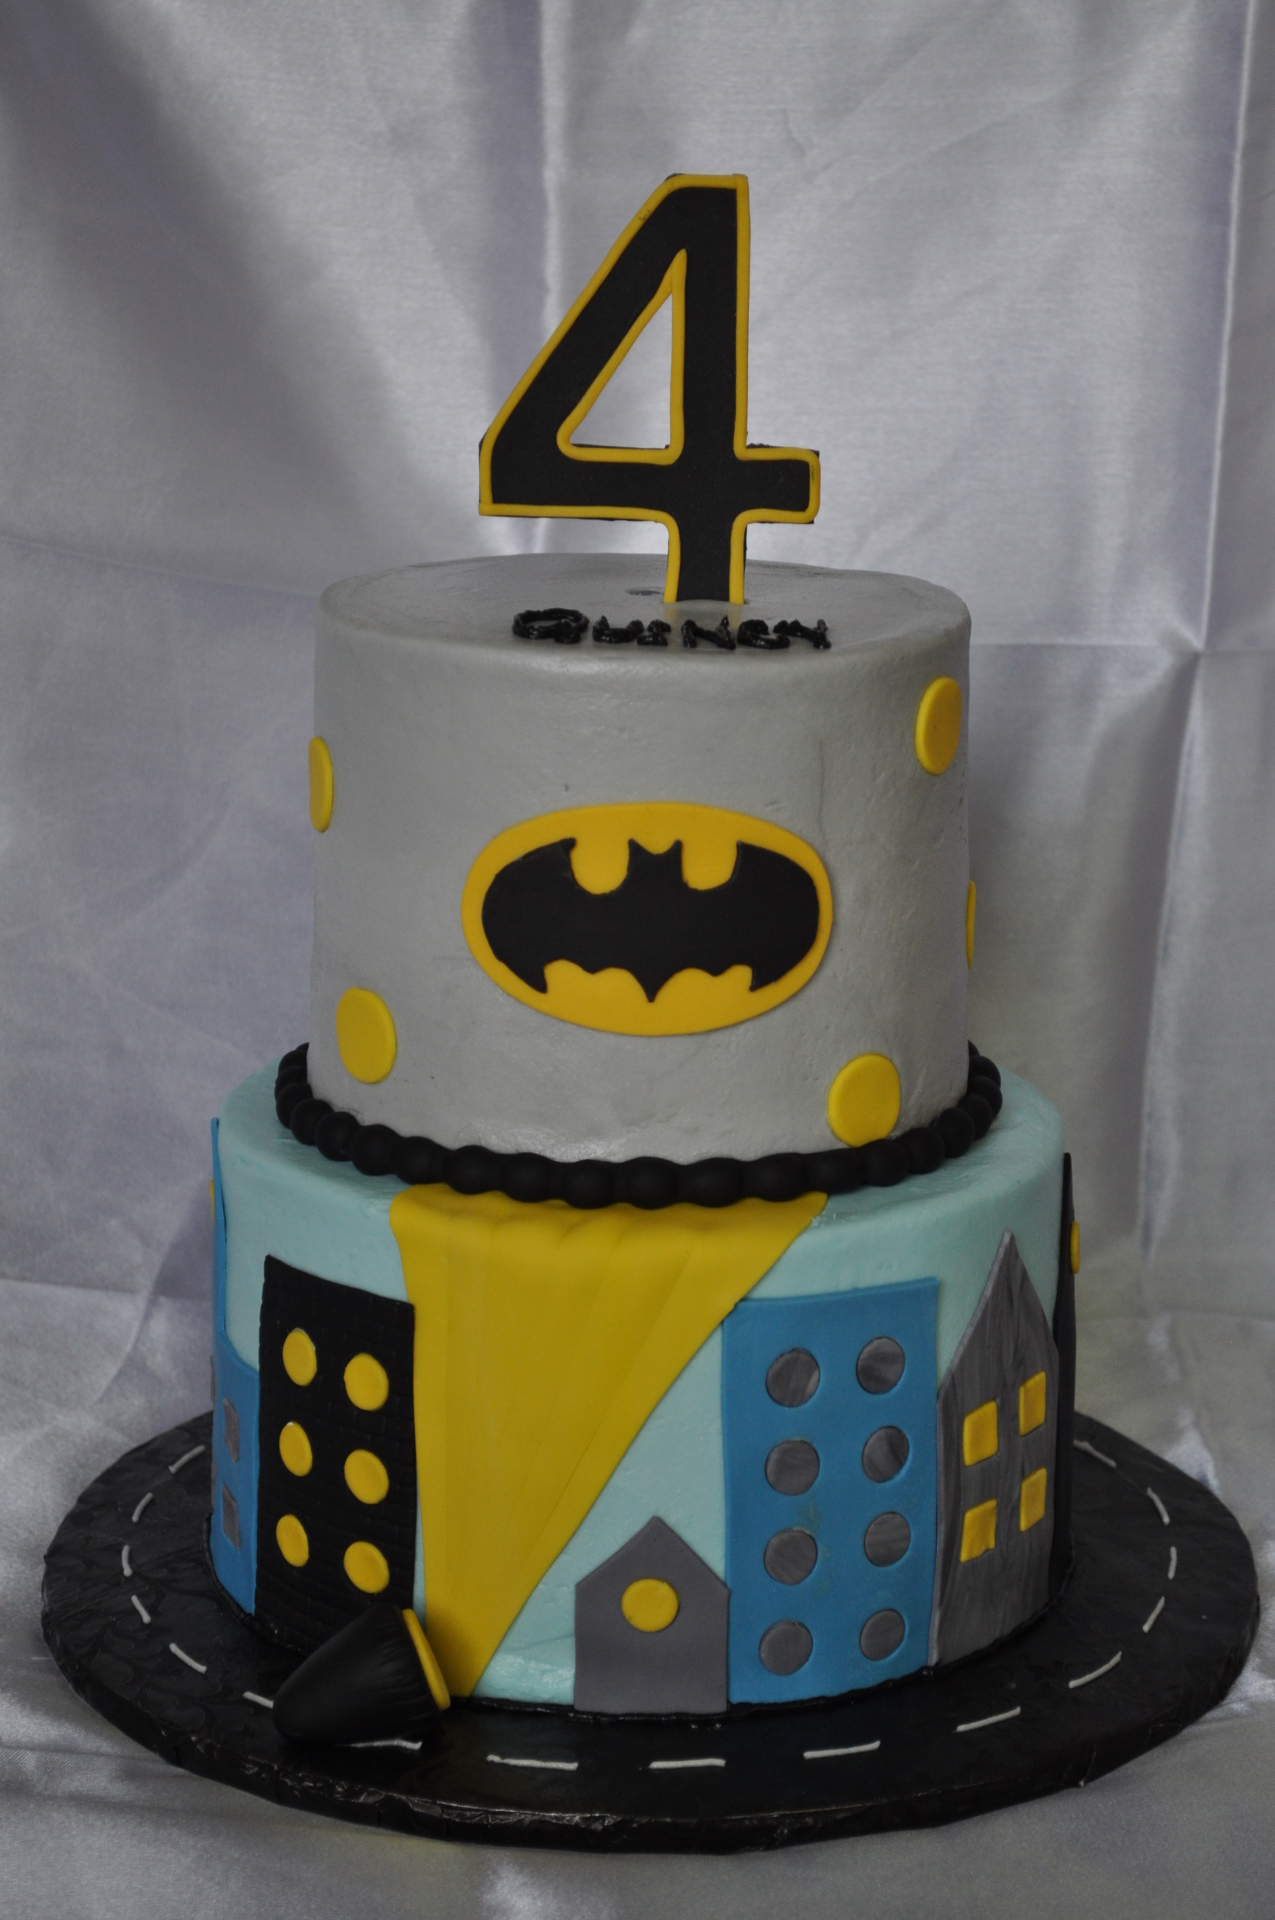 Batman theme tiered birthday